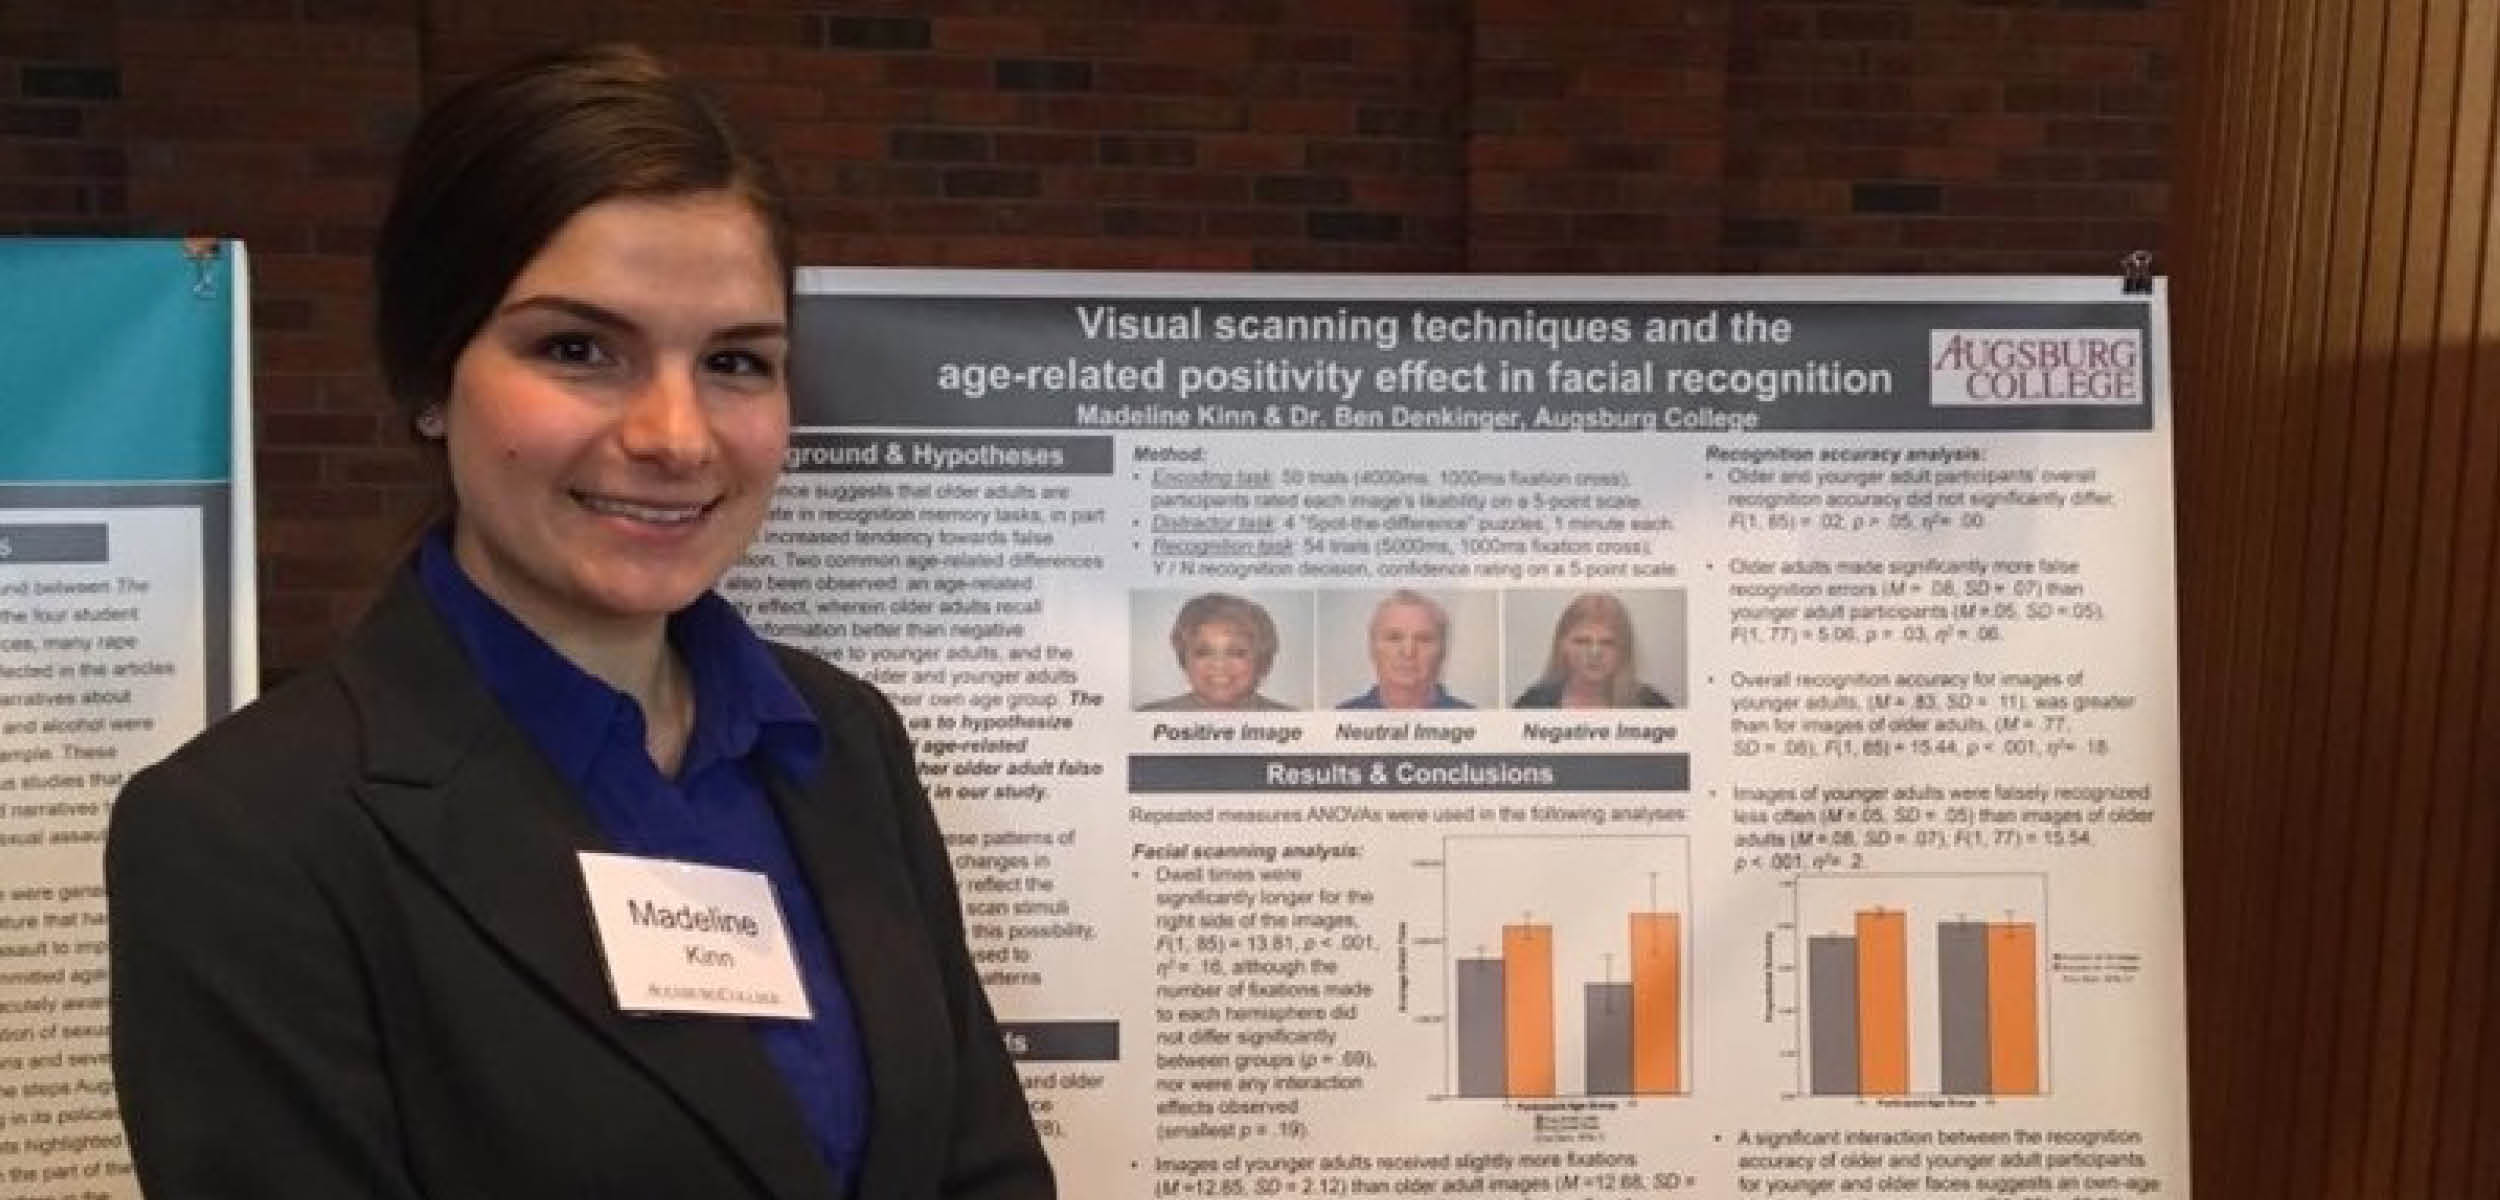 Is there a connection between aging and facial recognition? Plaza employee explains link found in her research